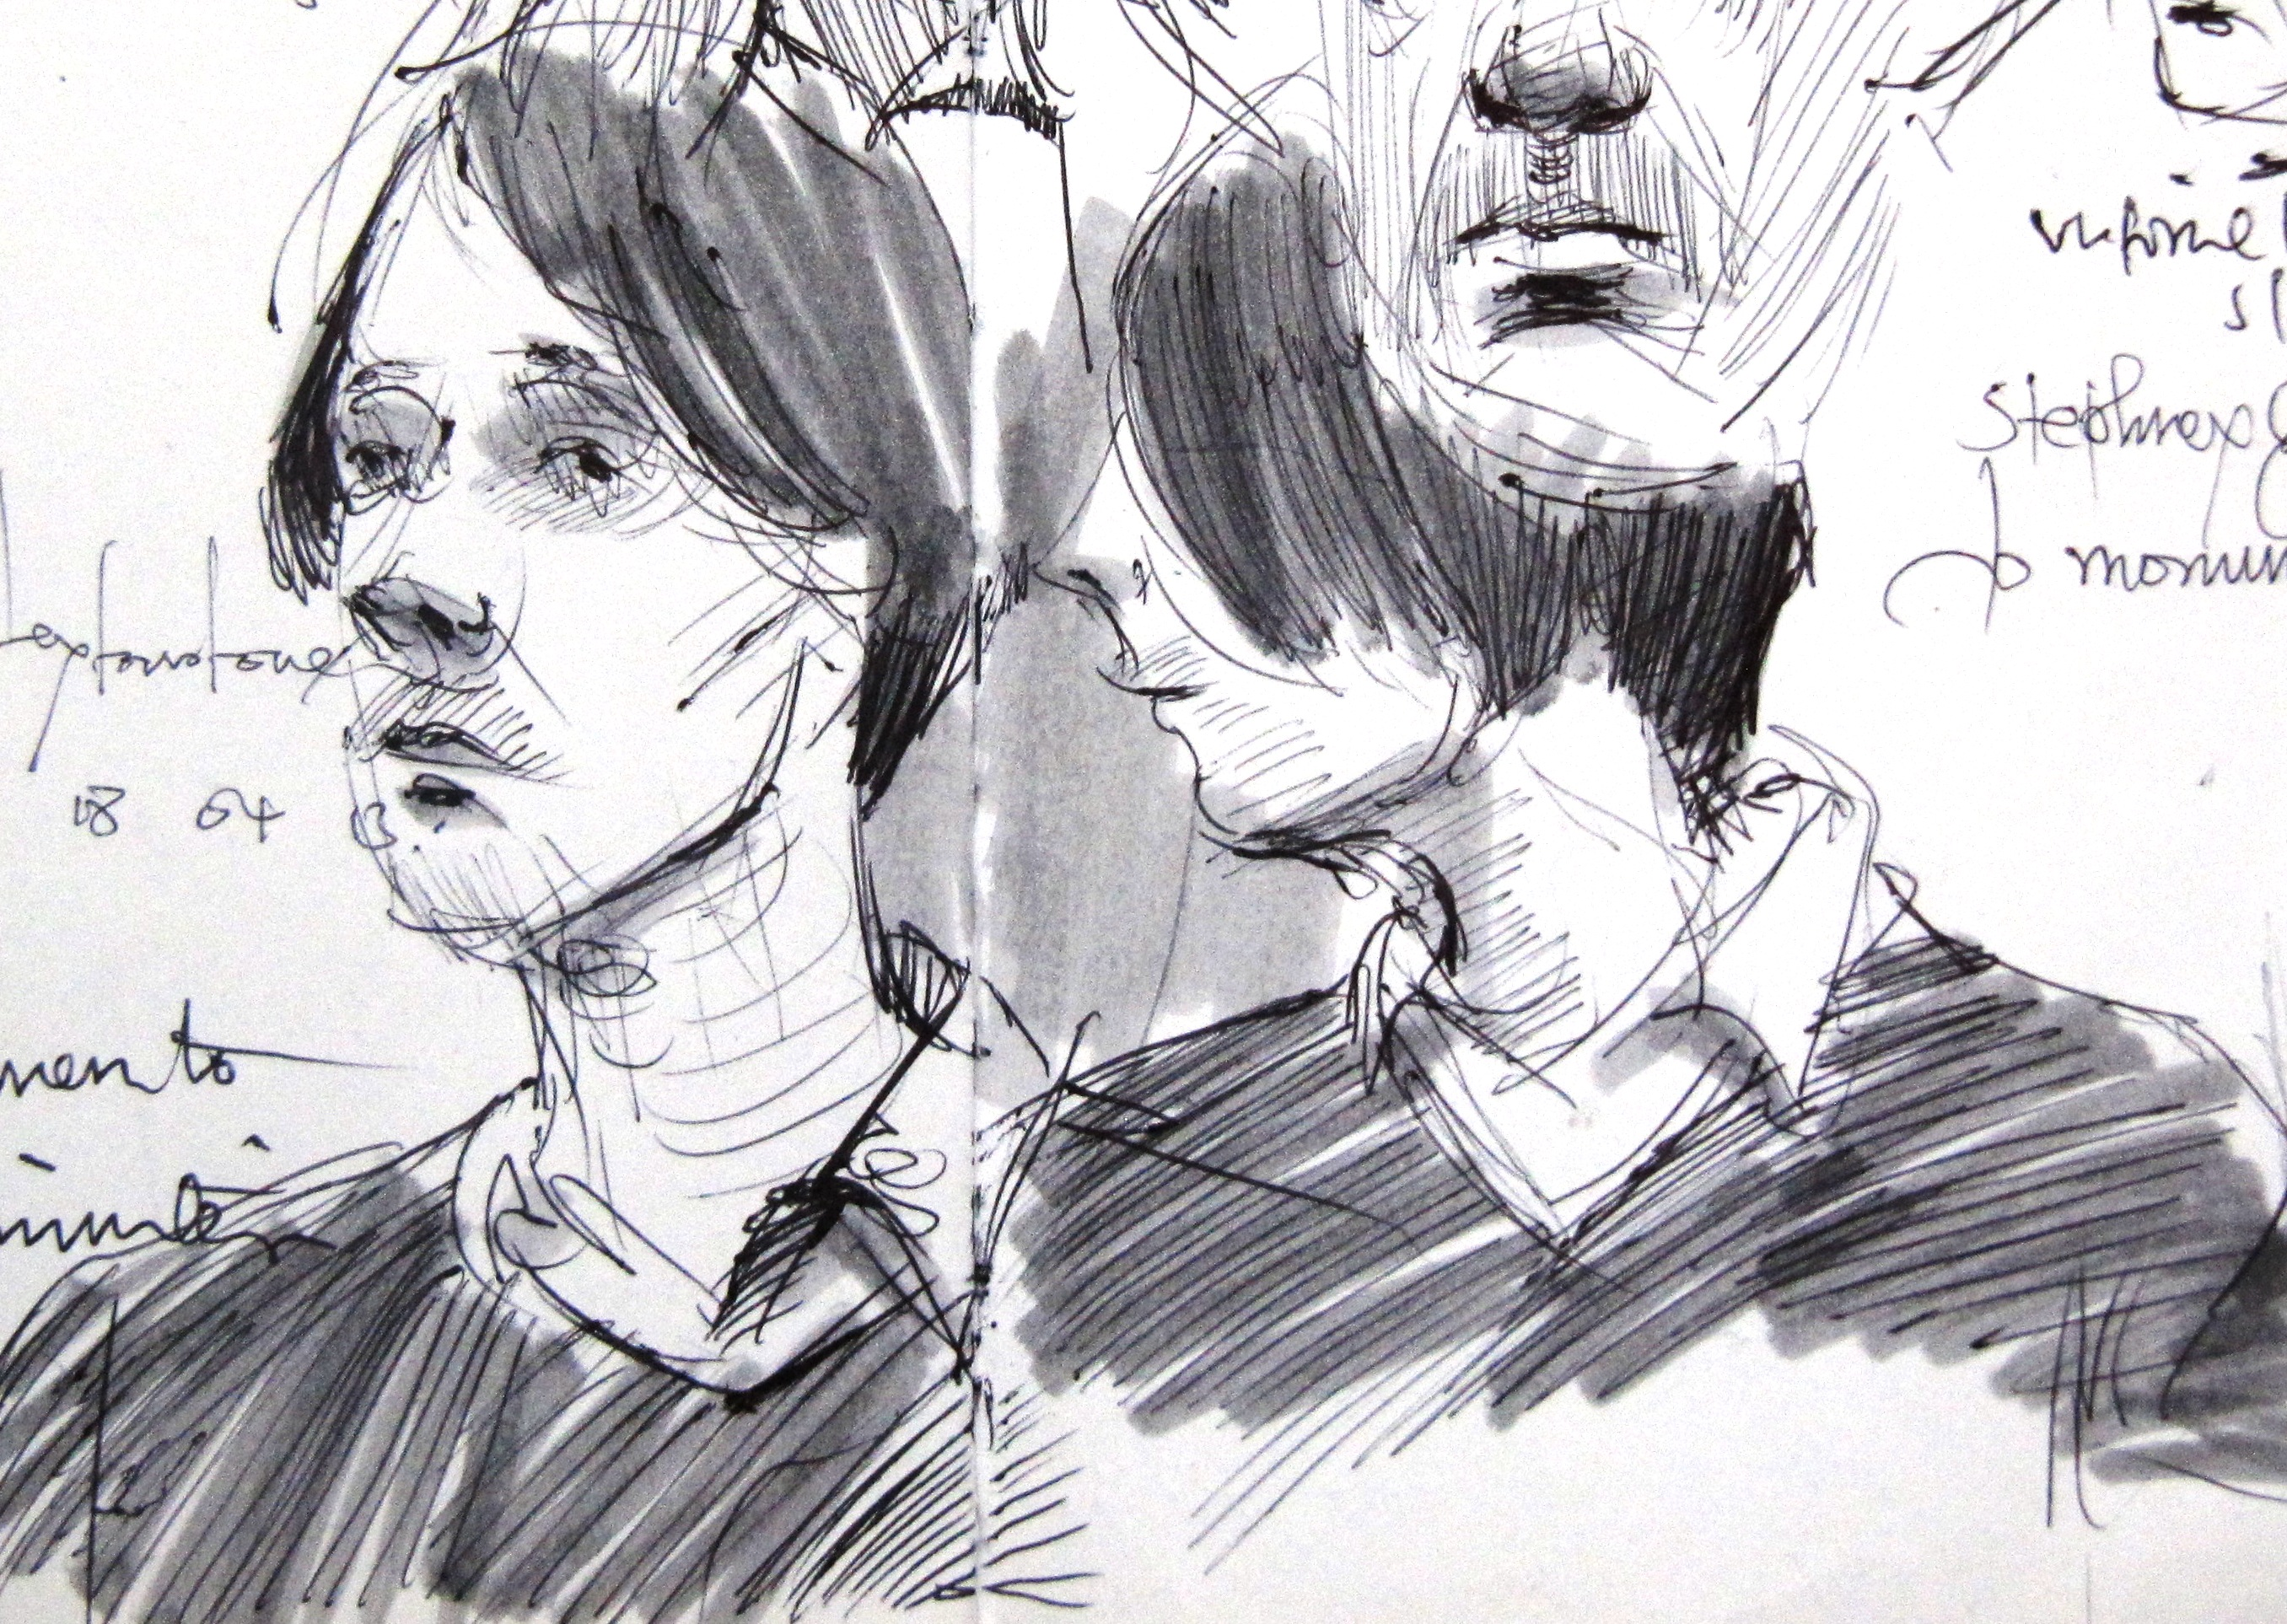 2 sketches of a man in shirt and jumper